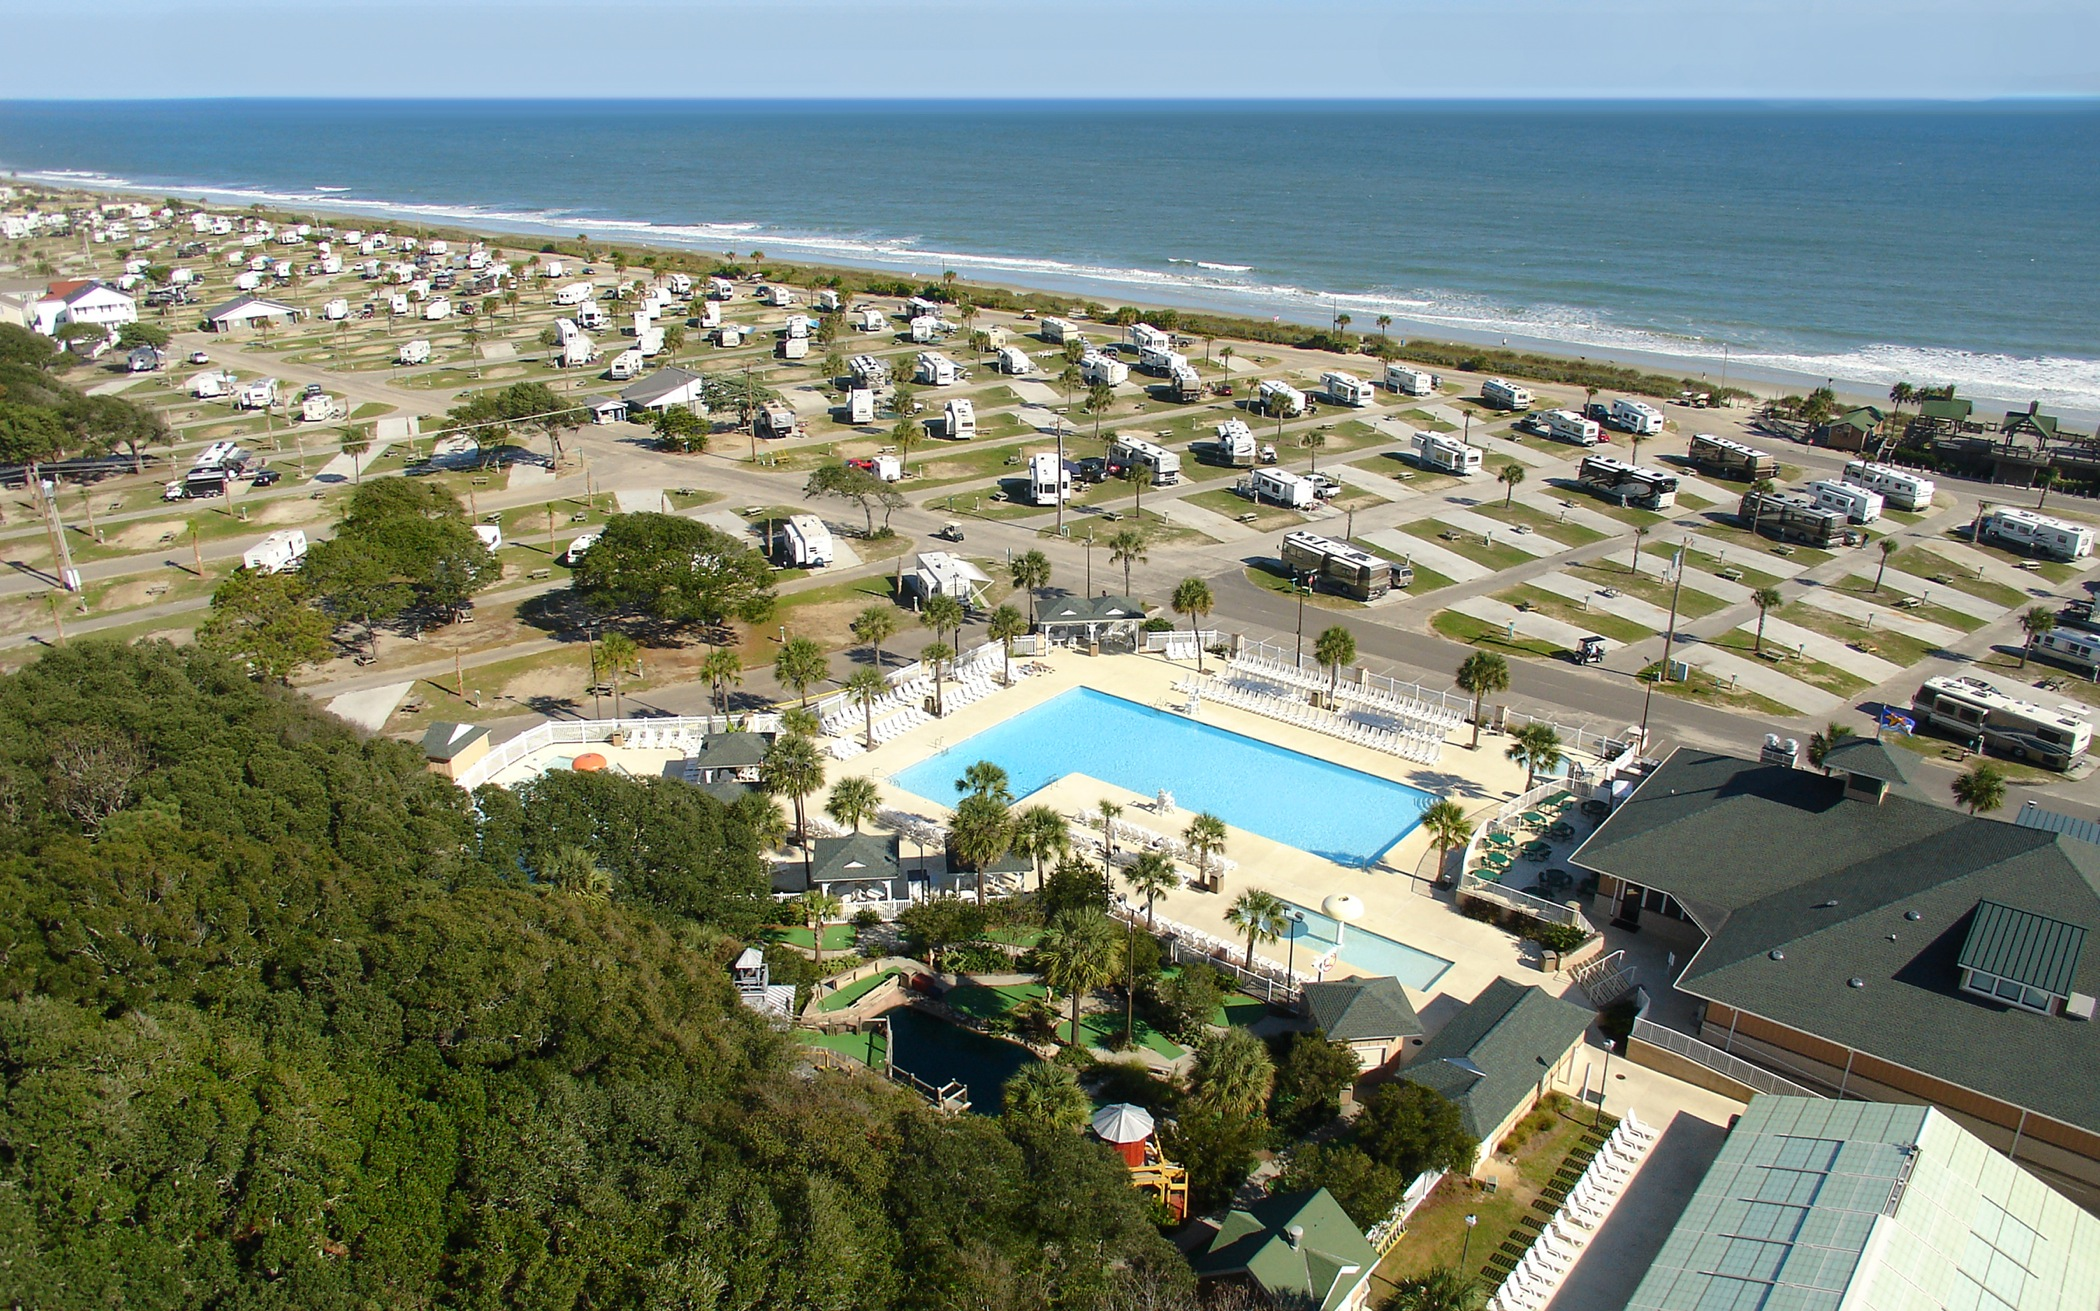 Campgrounds In N Myrtle Beach